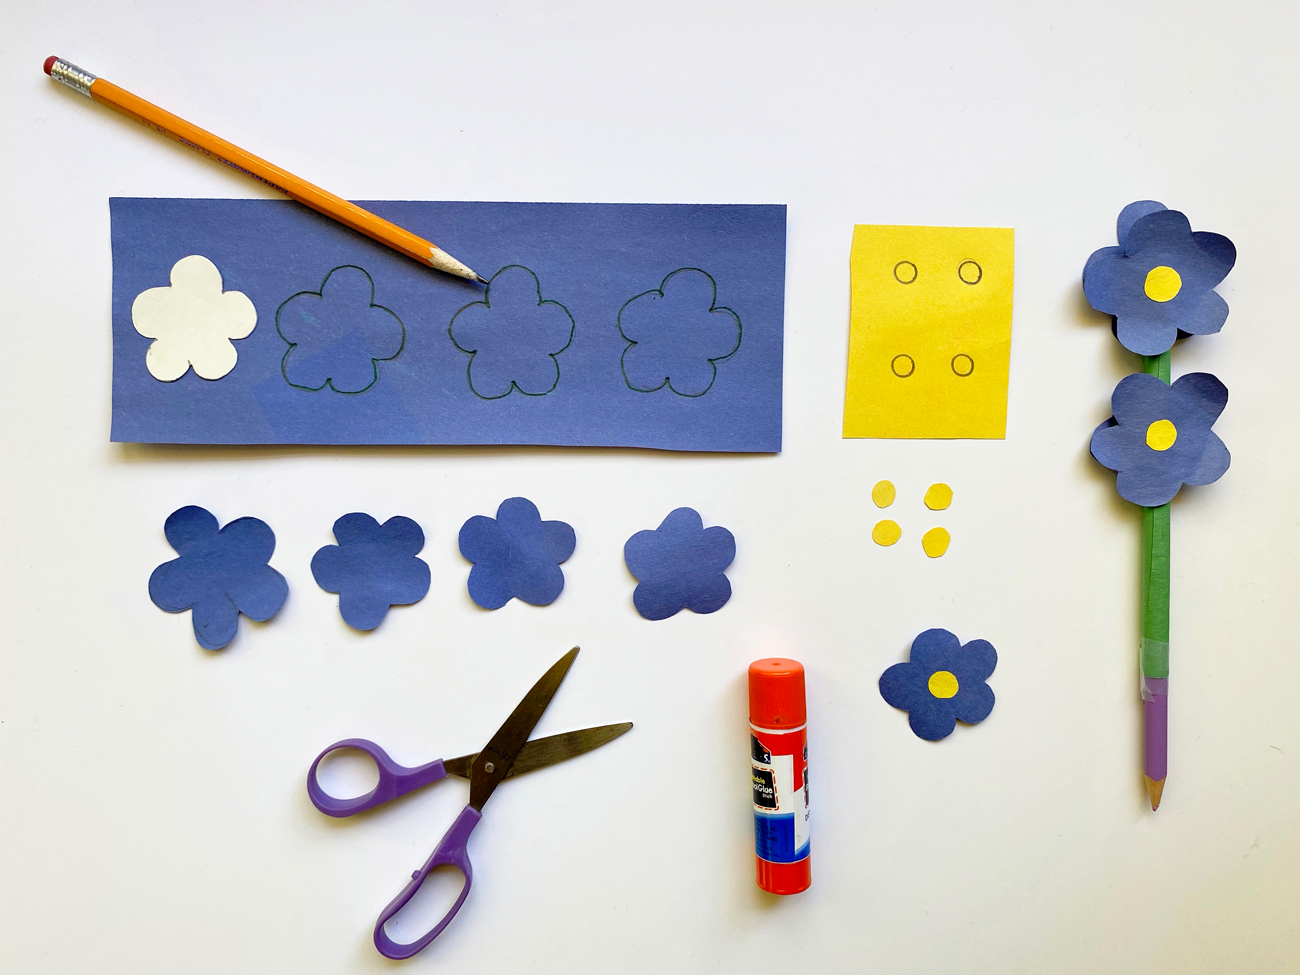 Blue paper with flower shapes drawn on, cut out blue flowers, a paper-wrapped pencil with paper flowers glued on.